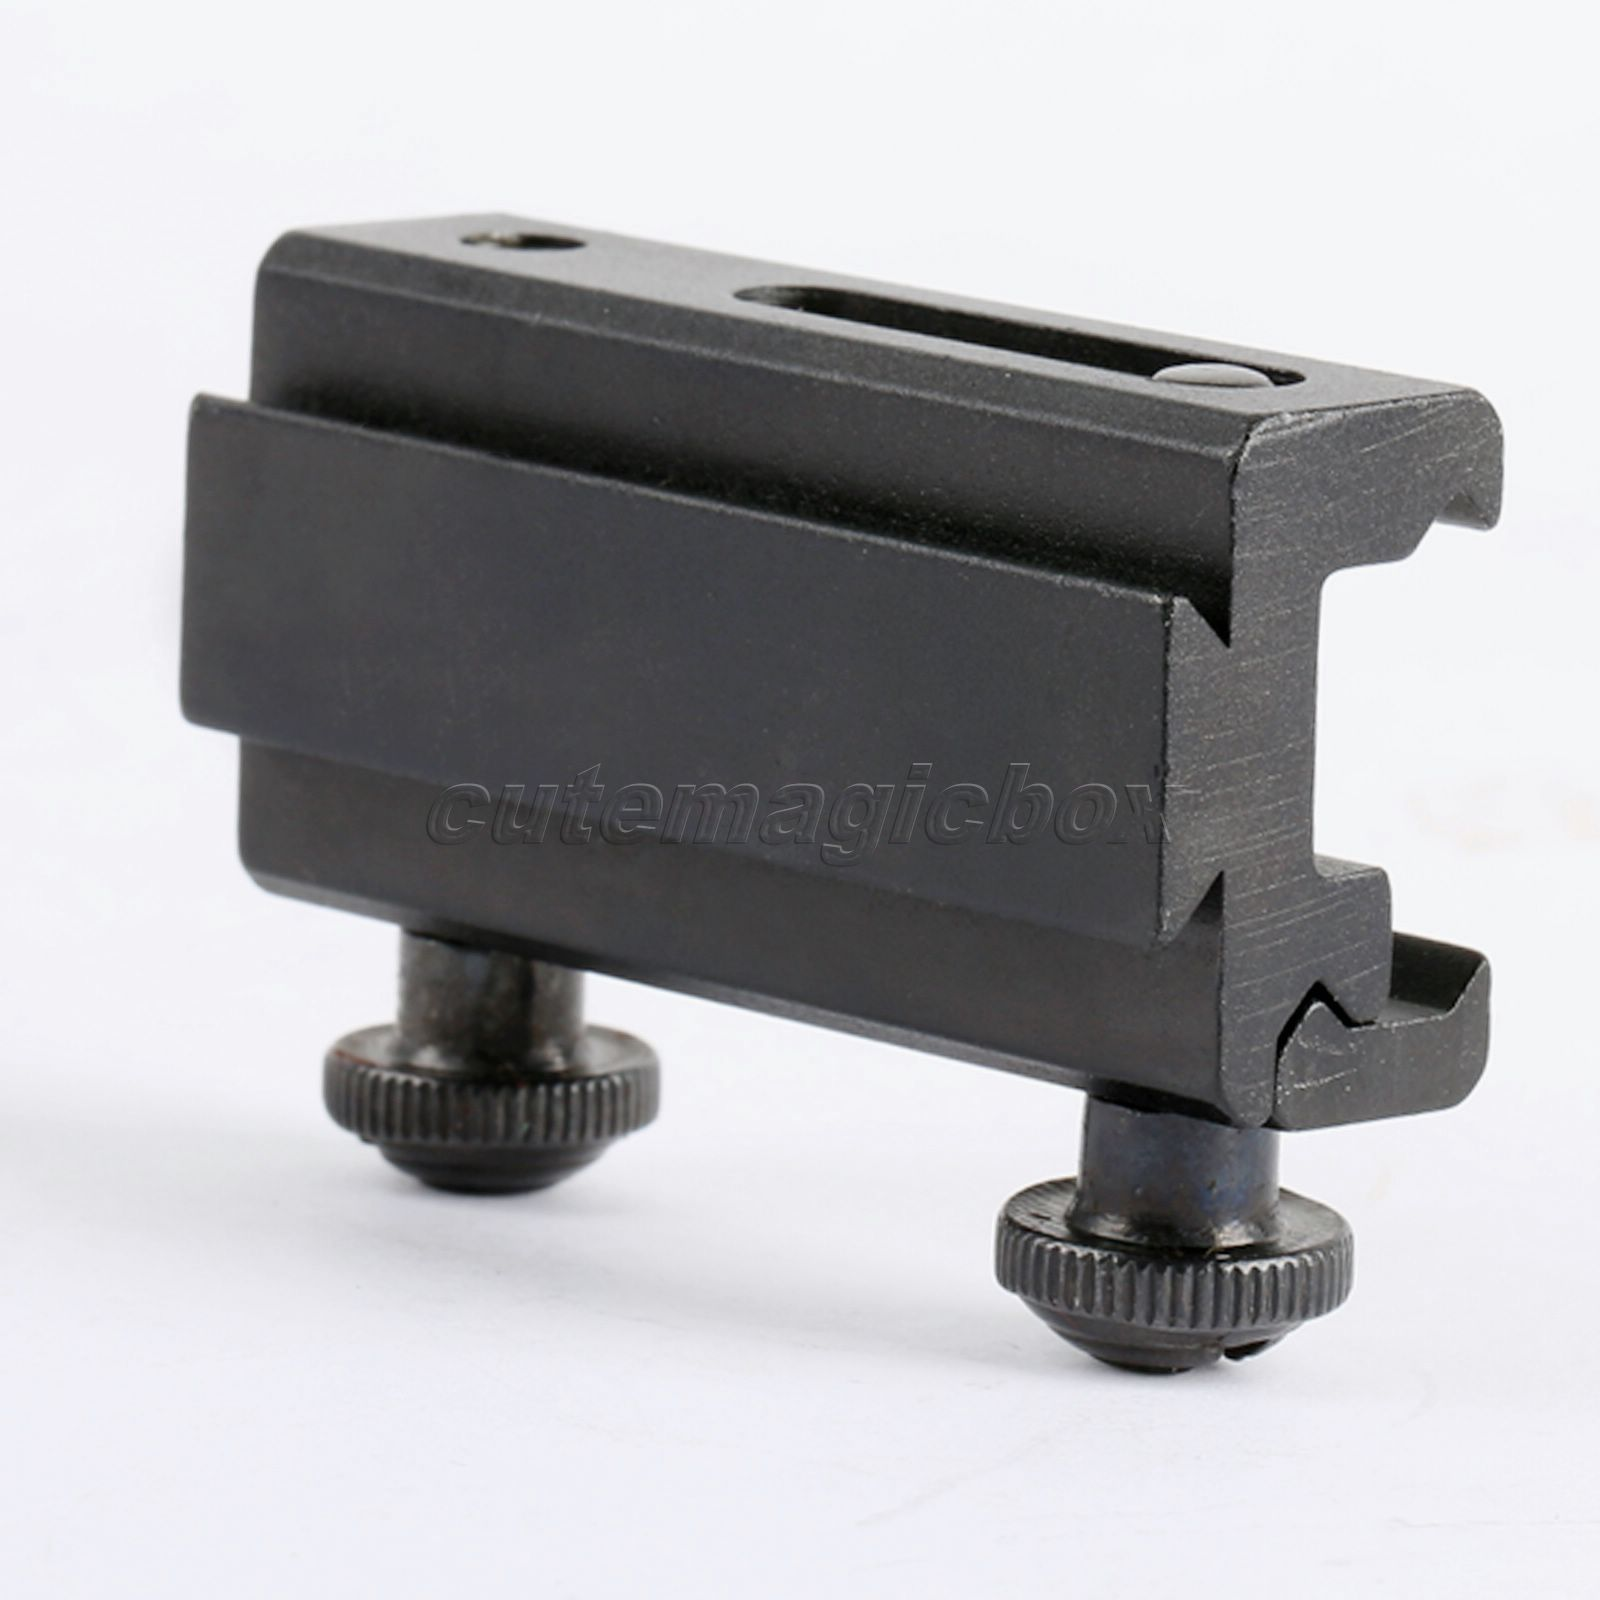 Hunting Tactical Alloy Dovetail Rail Extension 20mm to 11mm Picatinny Weaver Scope Mount Base Conversion Adapter(China (Mainland))